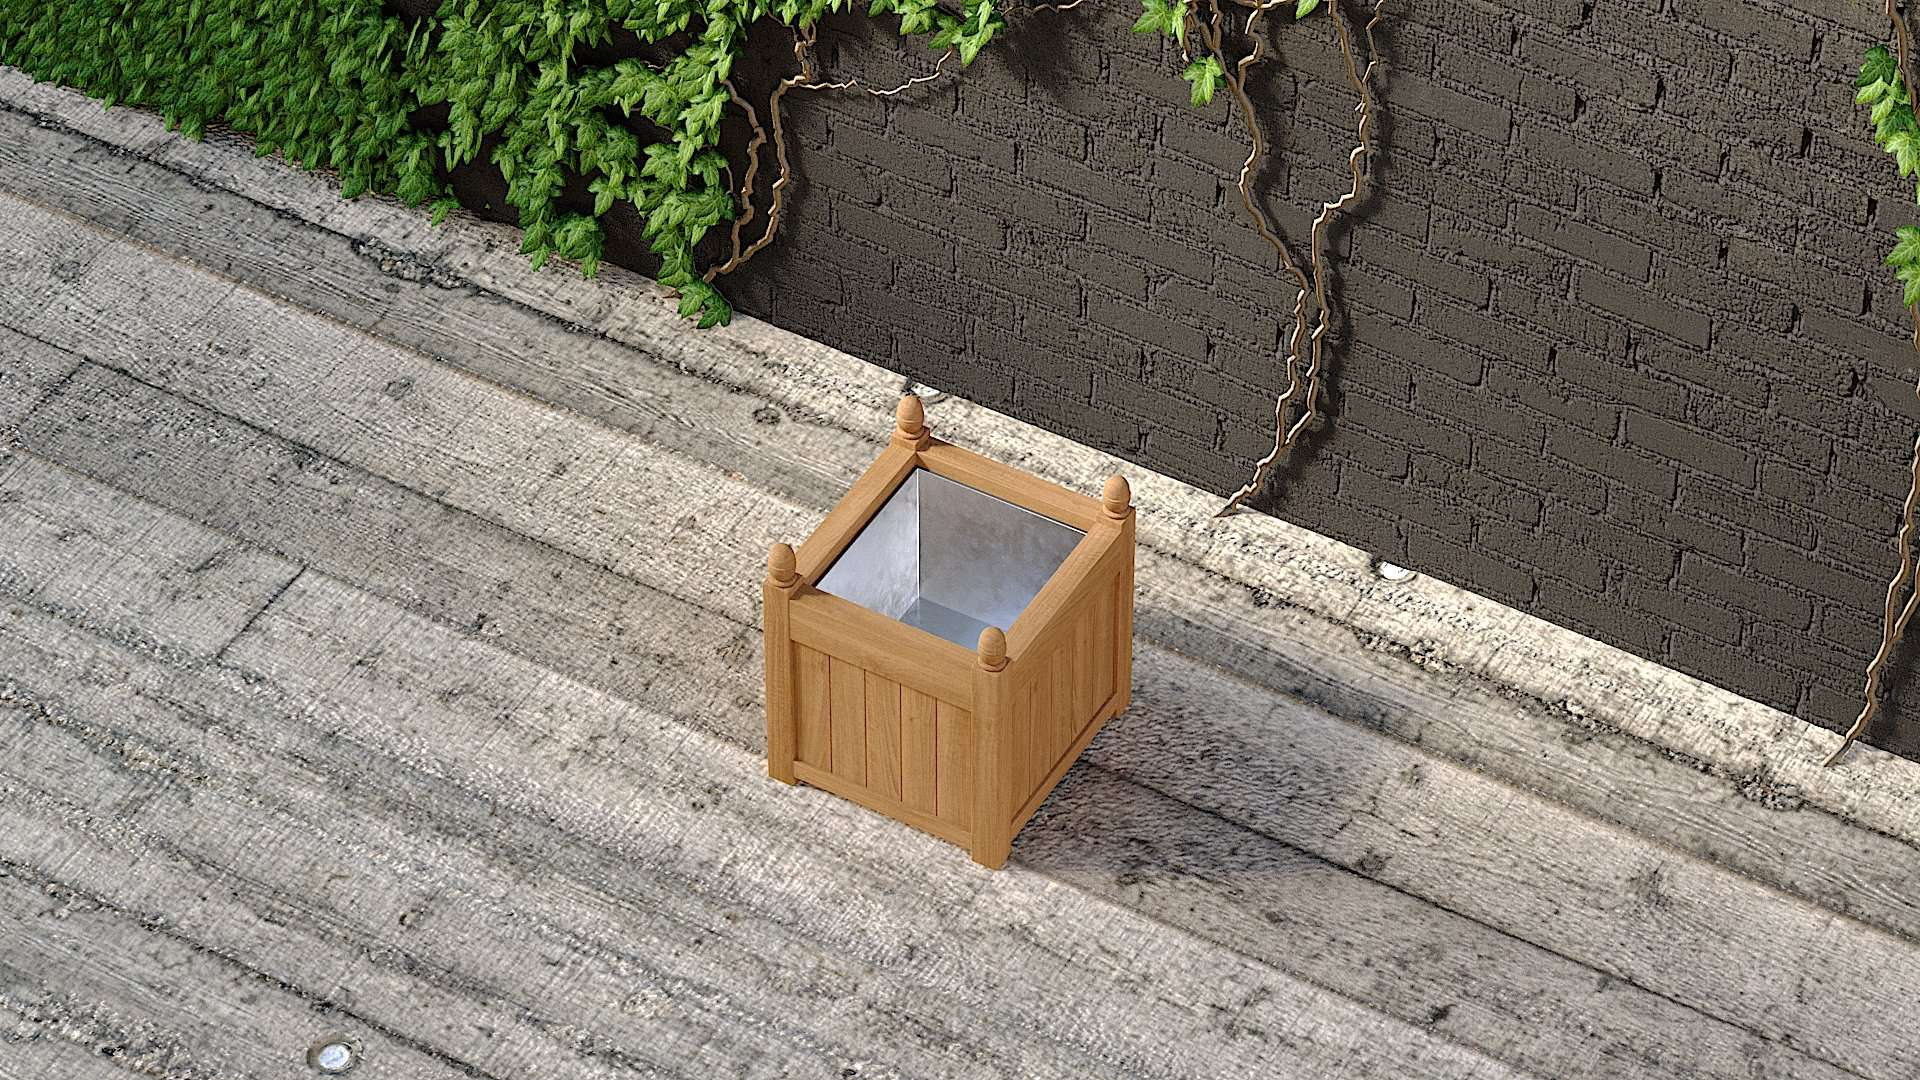 Galvanised Medium Garden Planter 55 x 55cm  - Chic Teak® | Luxury Teak Furniture